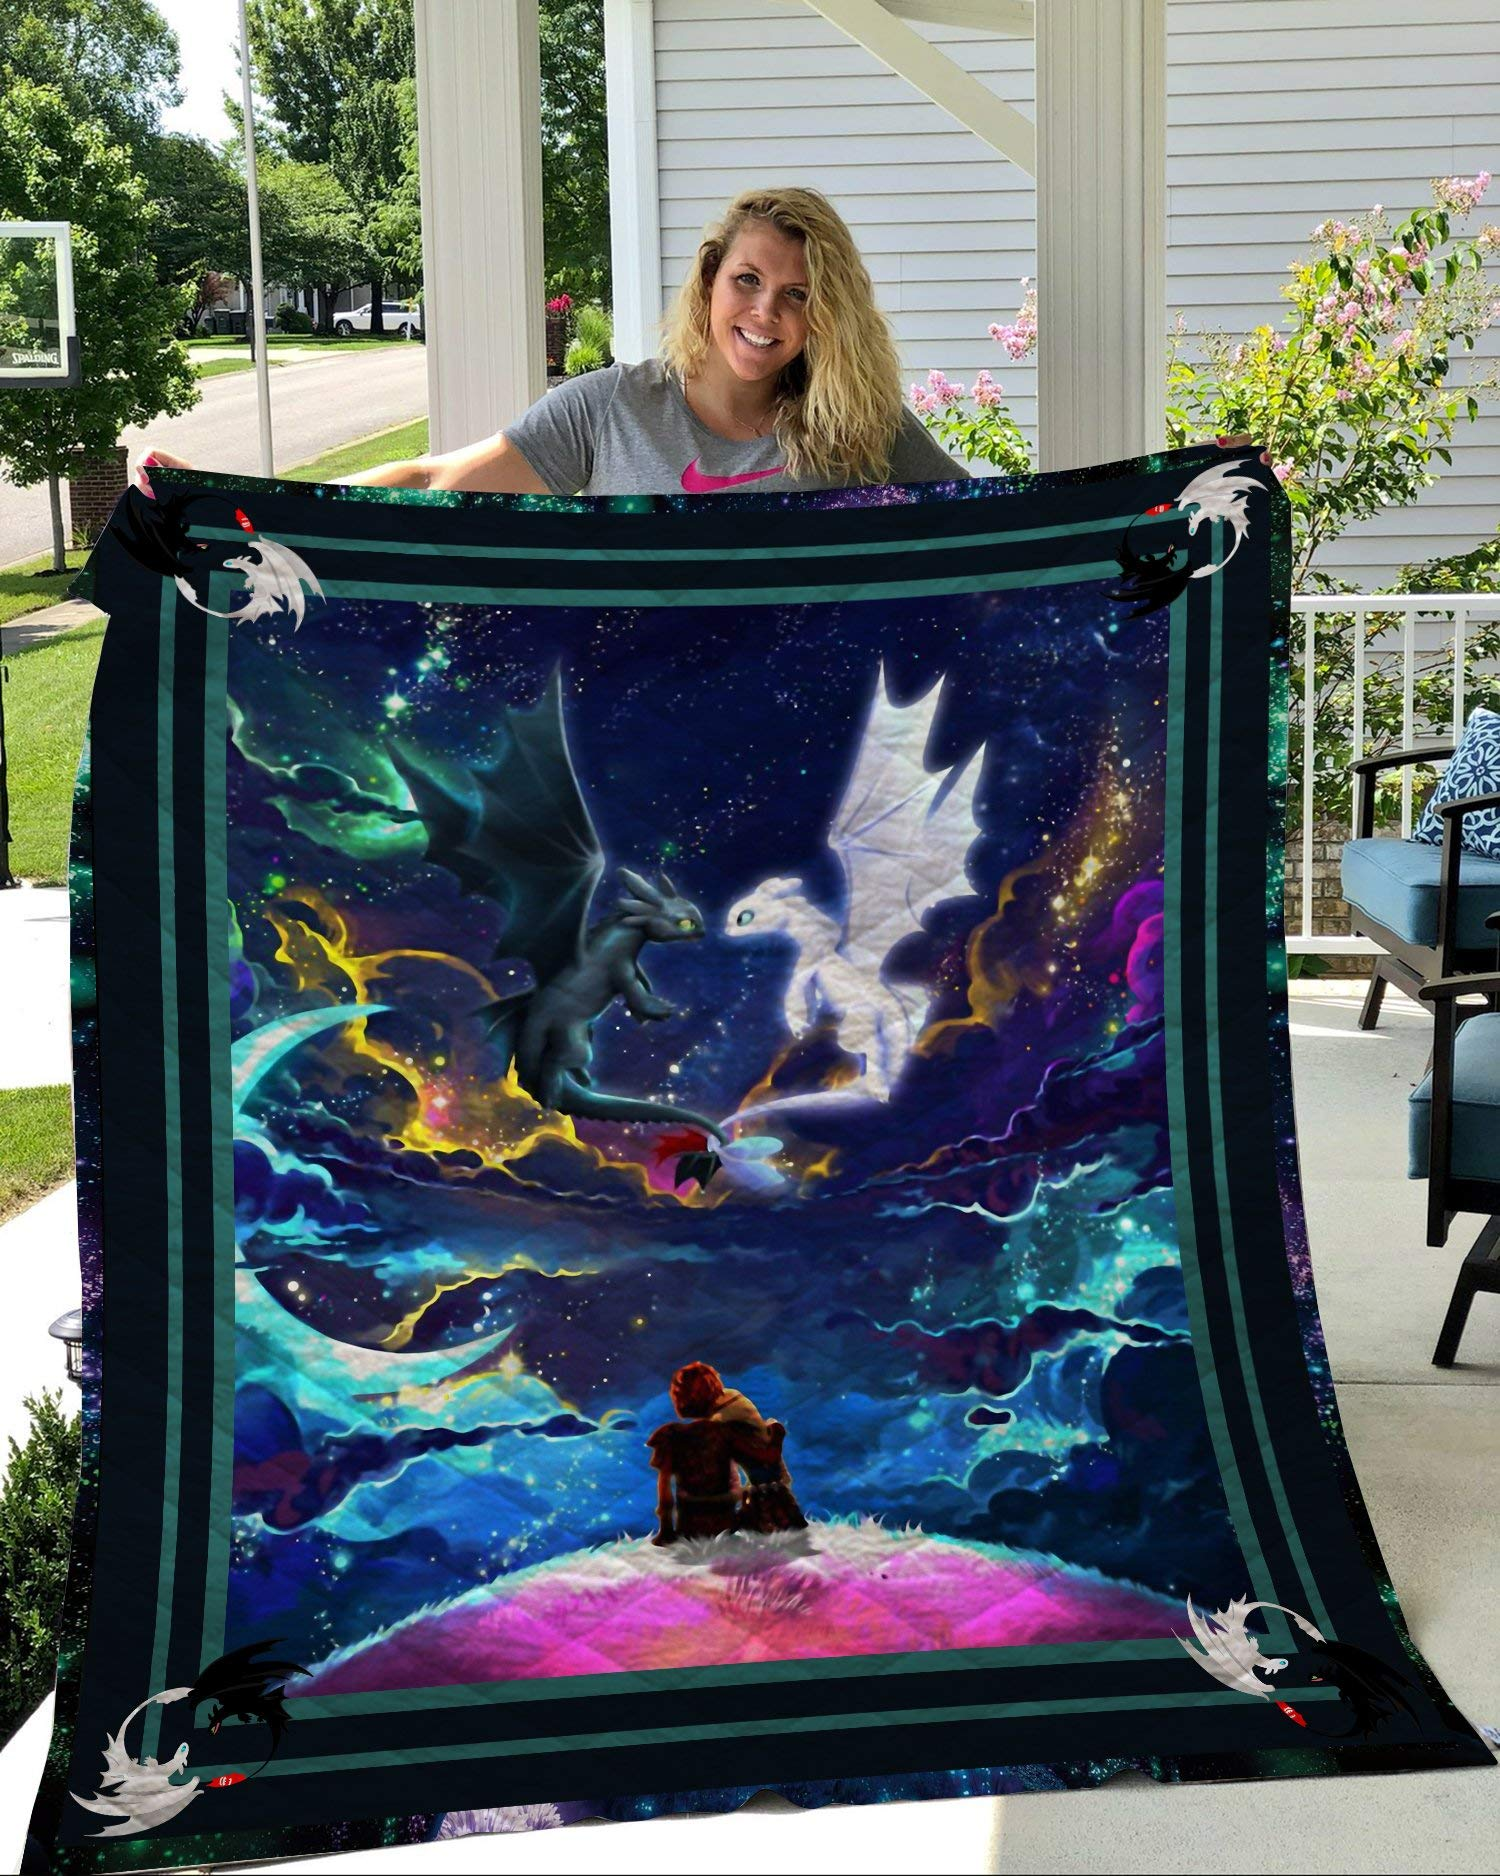 Kids How to Train Your Dragon Theme Quilt Blanket for Kids Bedding Throw Soft Warm Thin Blanket with Cotton Quilt (style4,130150cm) by owho